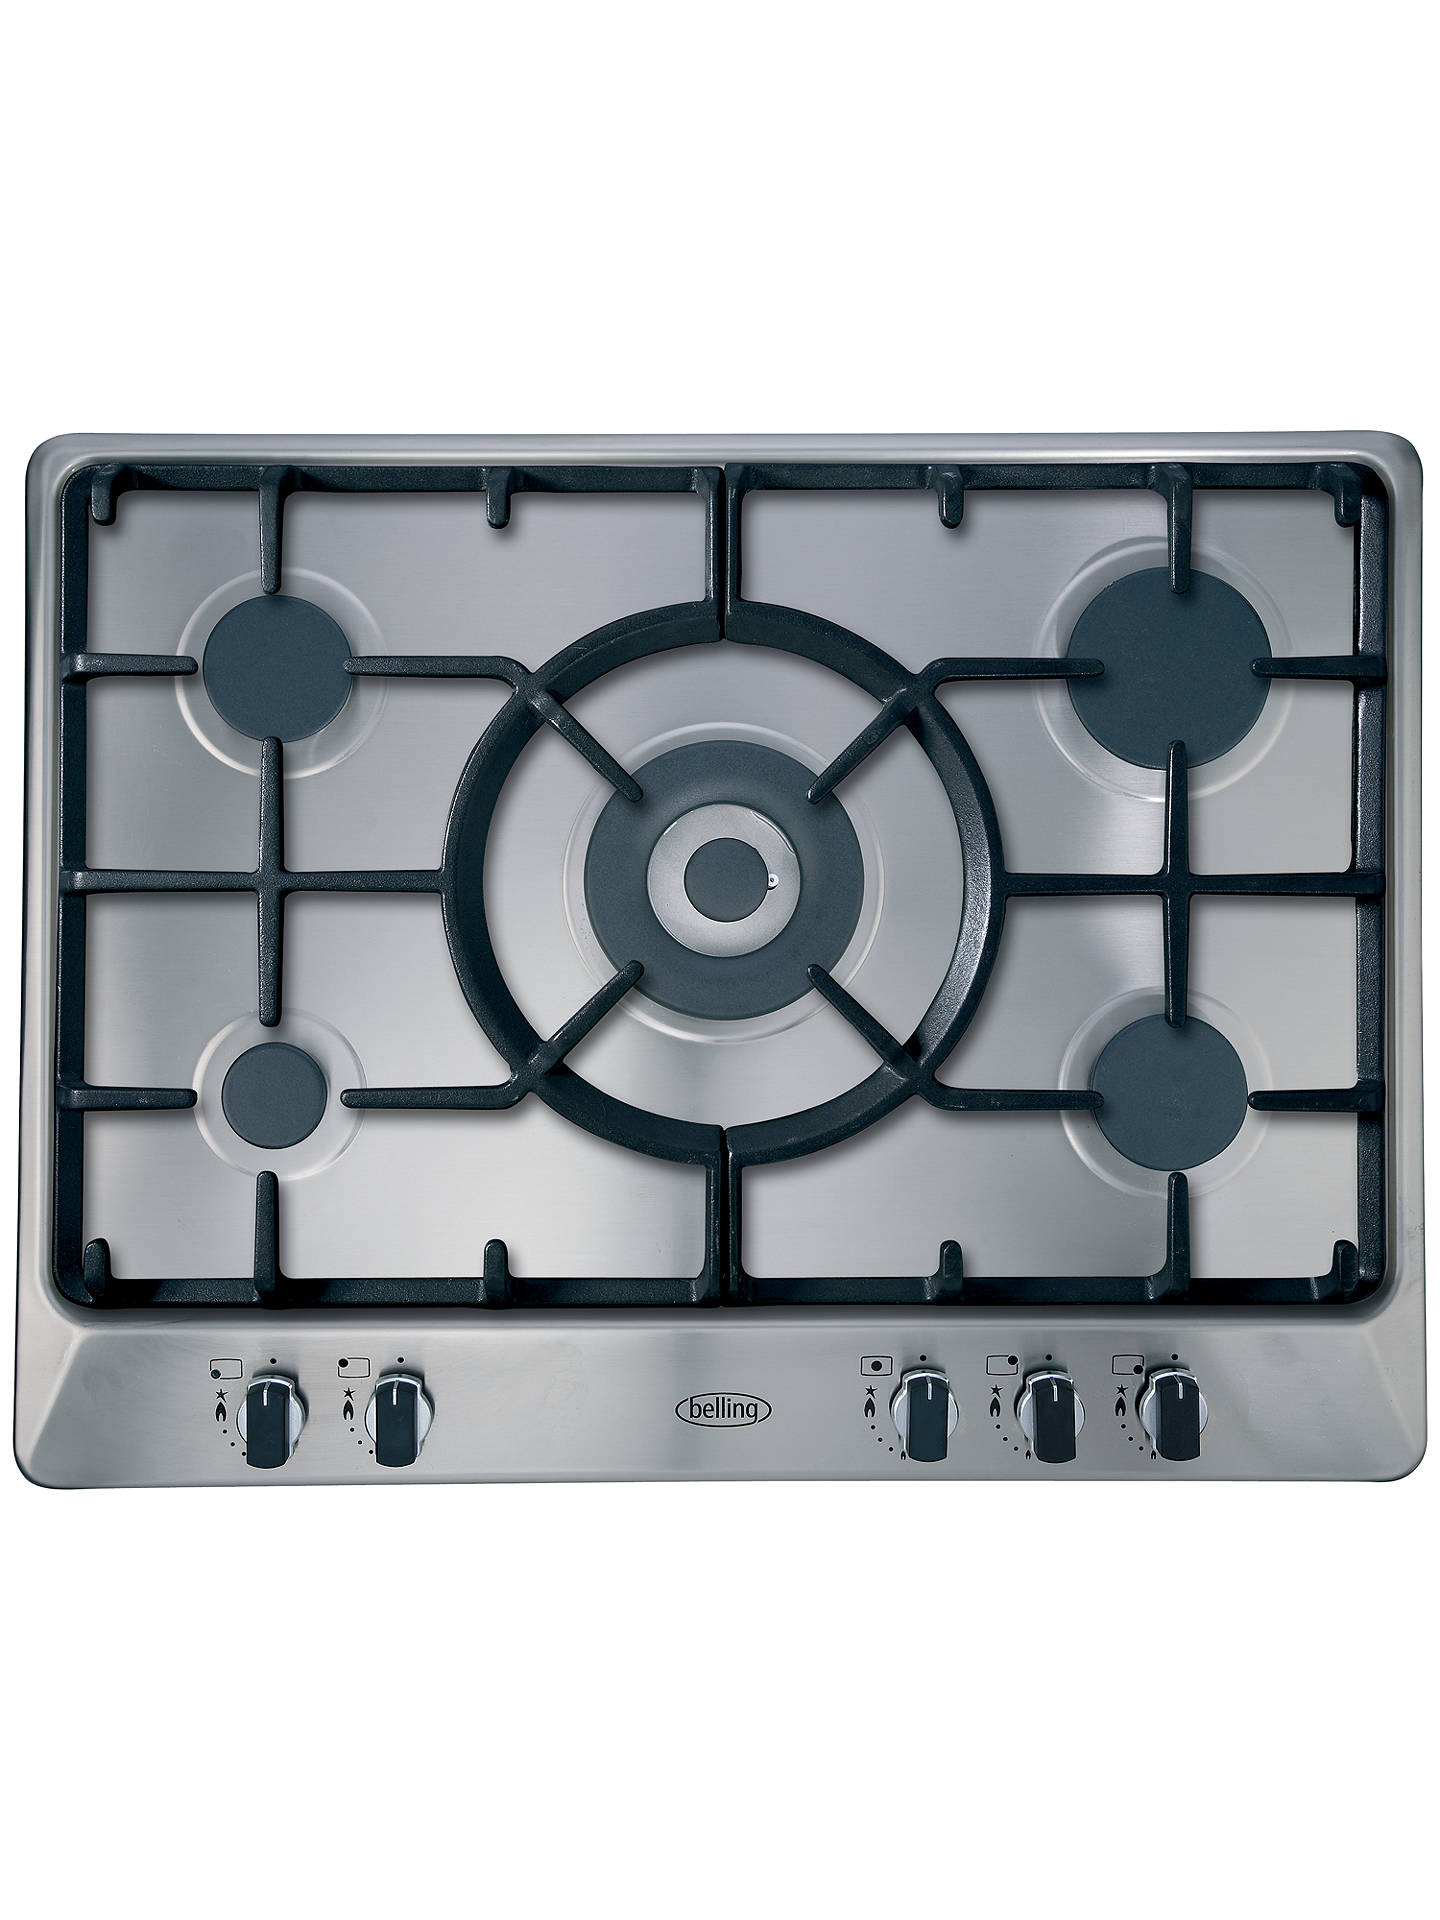 BuyBelling GHU70GC Built-In Gas Hob, Stainless Steel Online at johnlewis.com